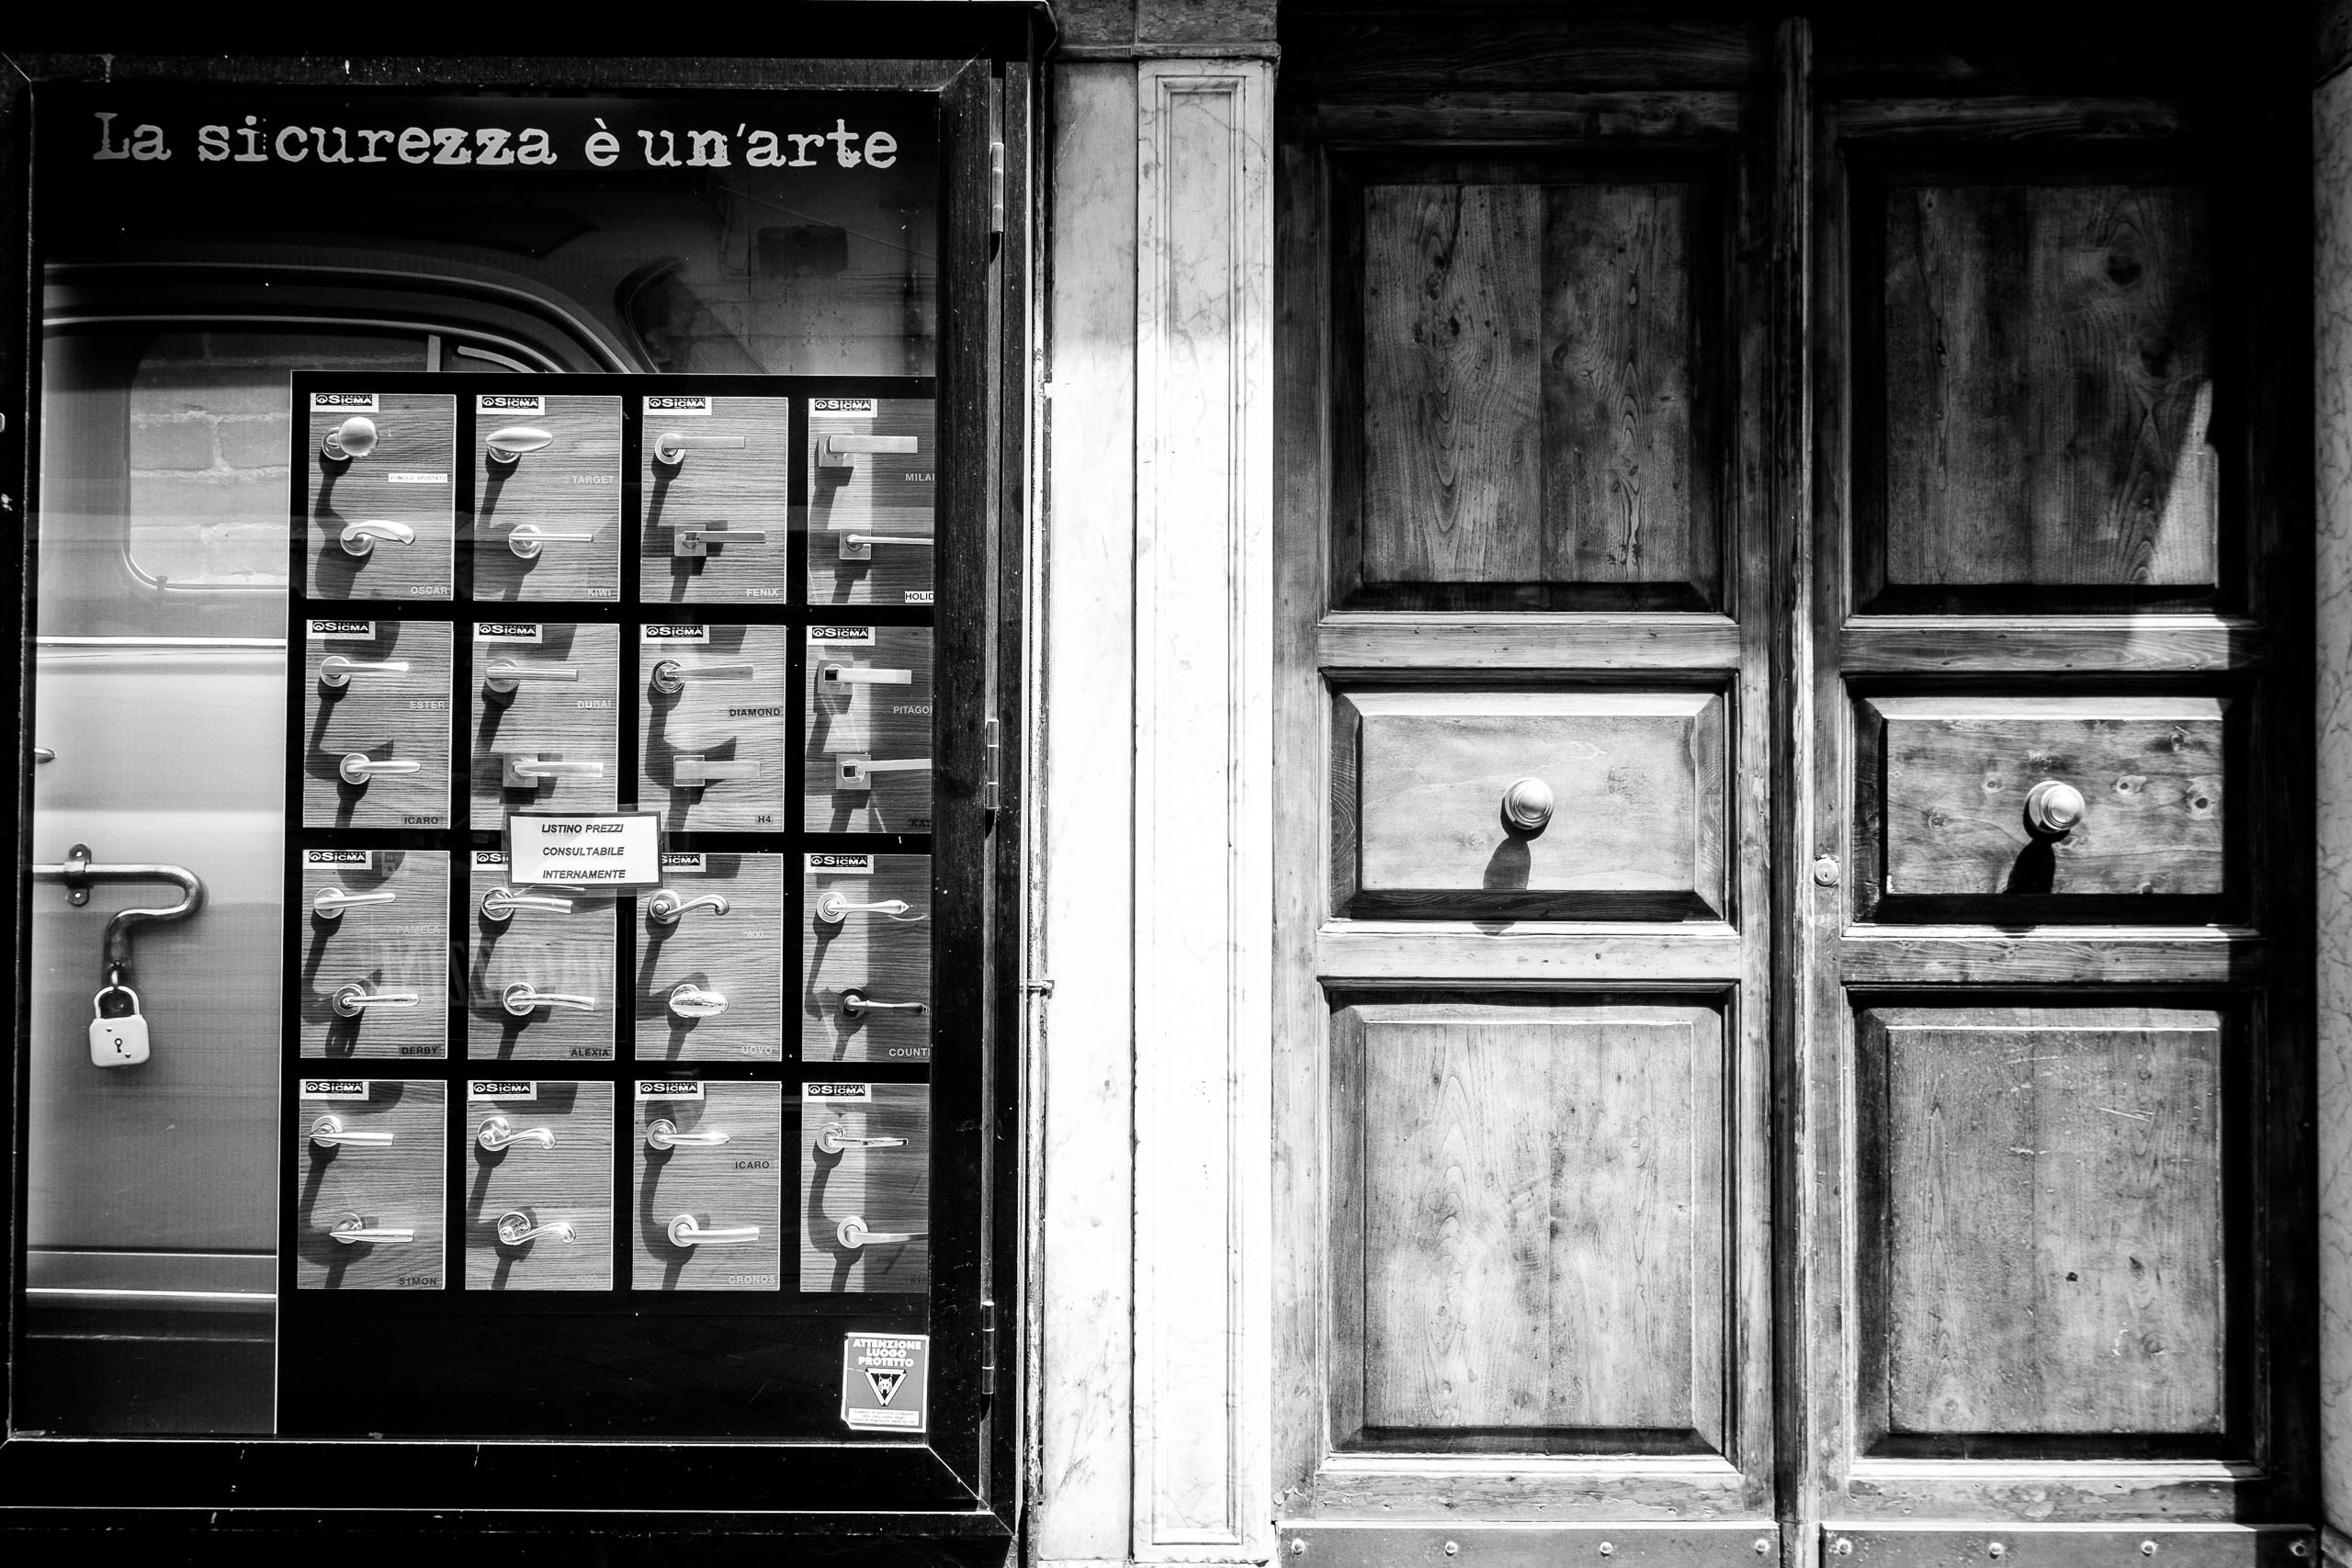 Shop fronts in La Spezia, Italy